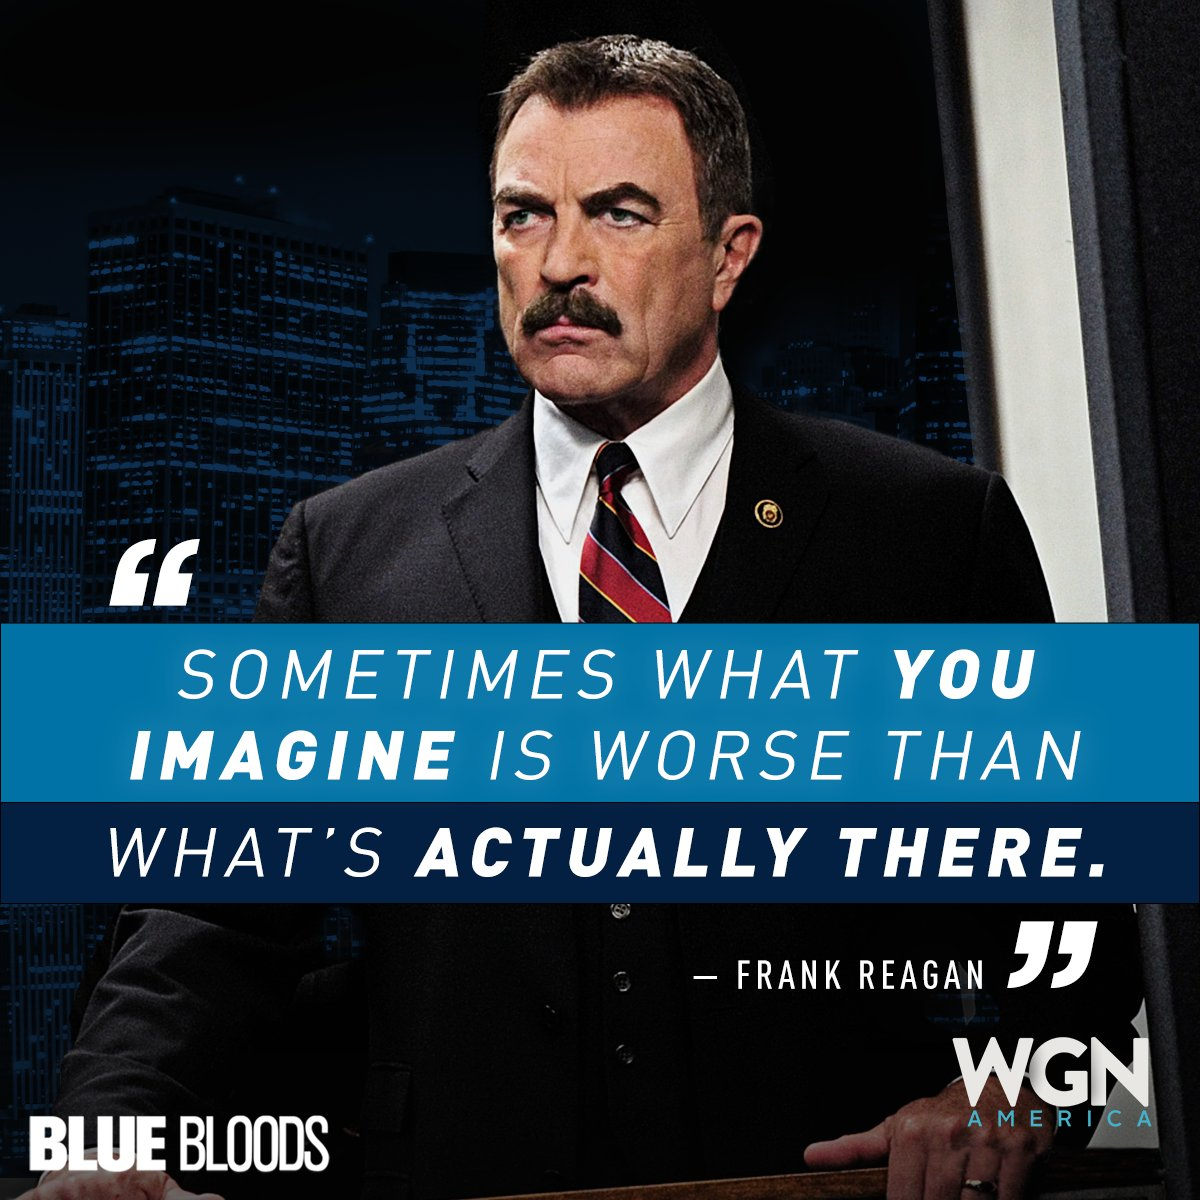 Spend a few hours with Frank Reagan and his thoughts. Watch back to back episodes of #BlueBloods TODAY starting at 2/1c only on @WGNAmerica.   Find your Channel now: https://t.co/kRuErapsvy https://t.co/xHOwOwy8NB